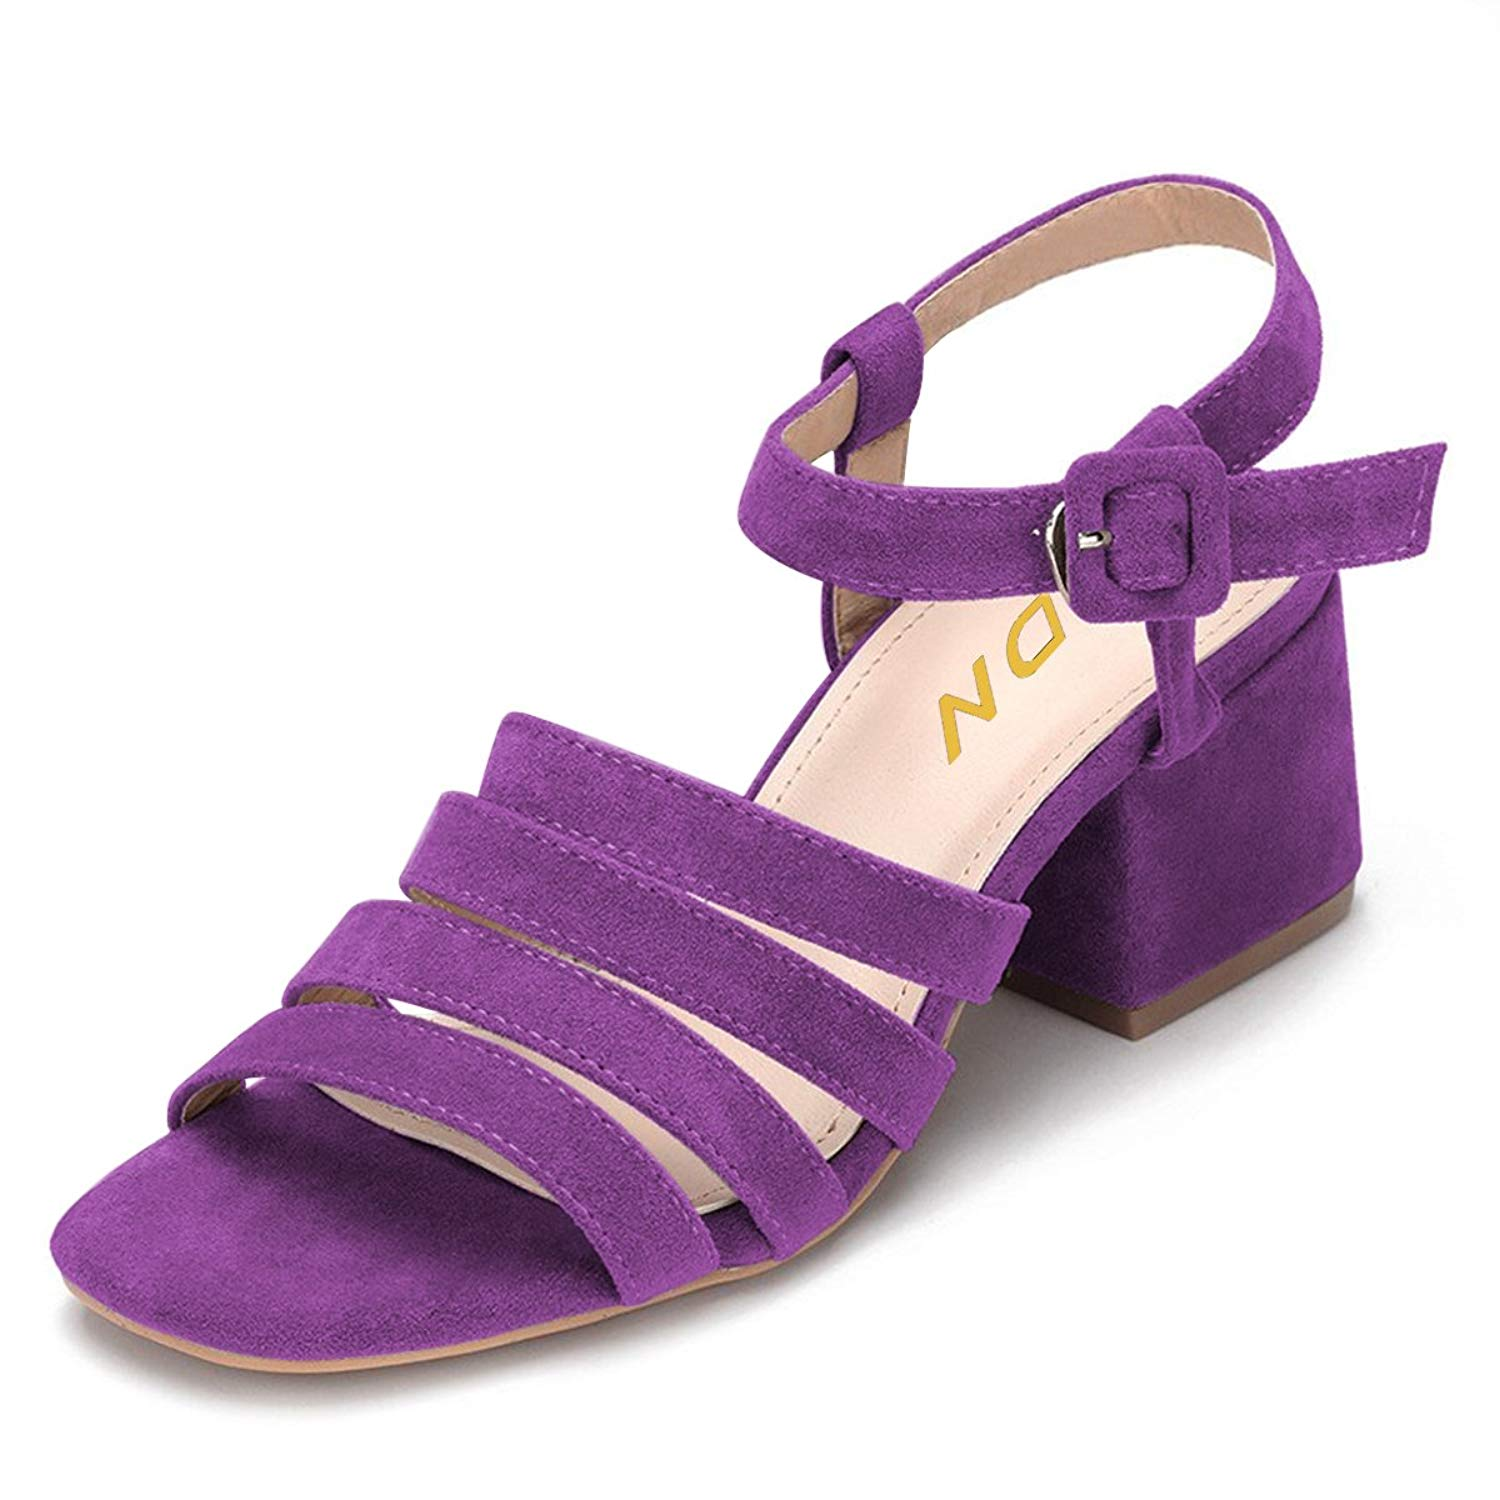 9b1fbfffb3ad YDN Womens Strappy Ankle Strap Sandals Open Toe Block Low Heels Pumps  Slingback Buckle Shoes